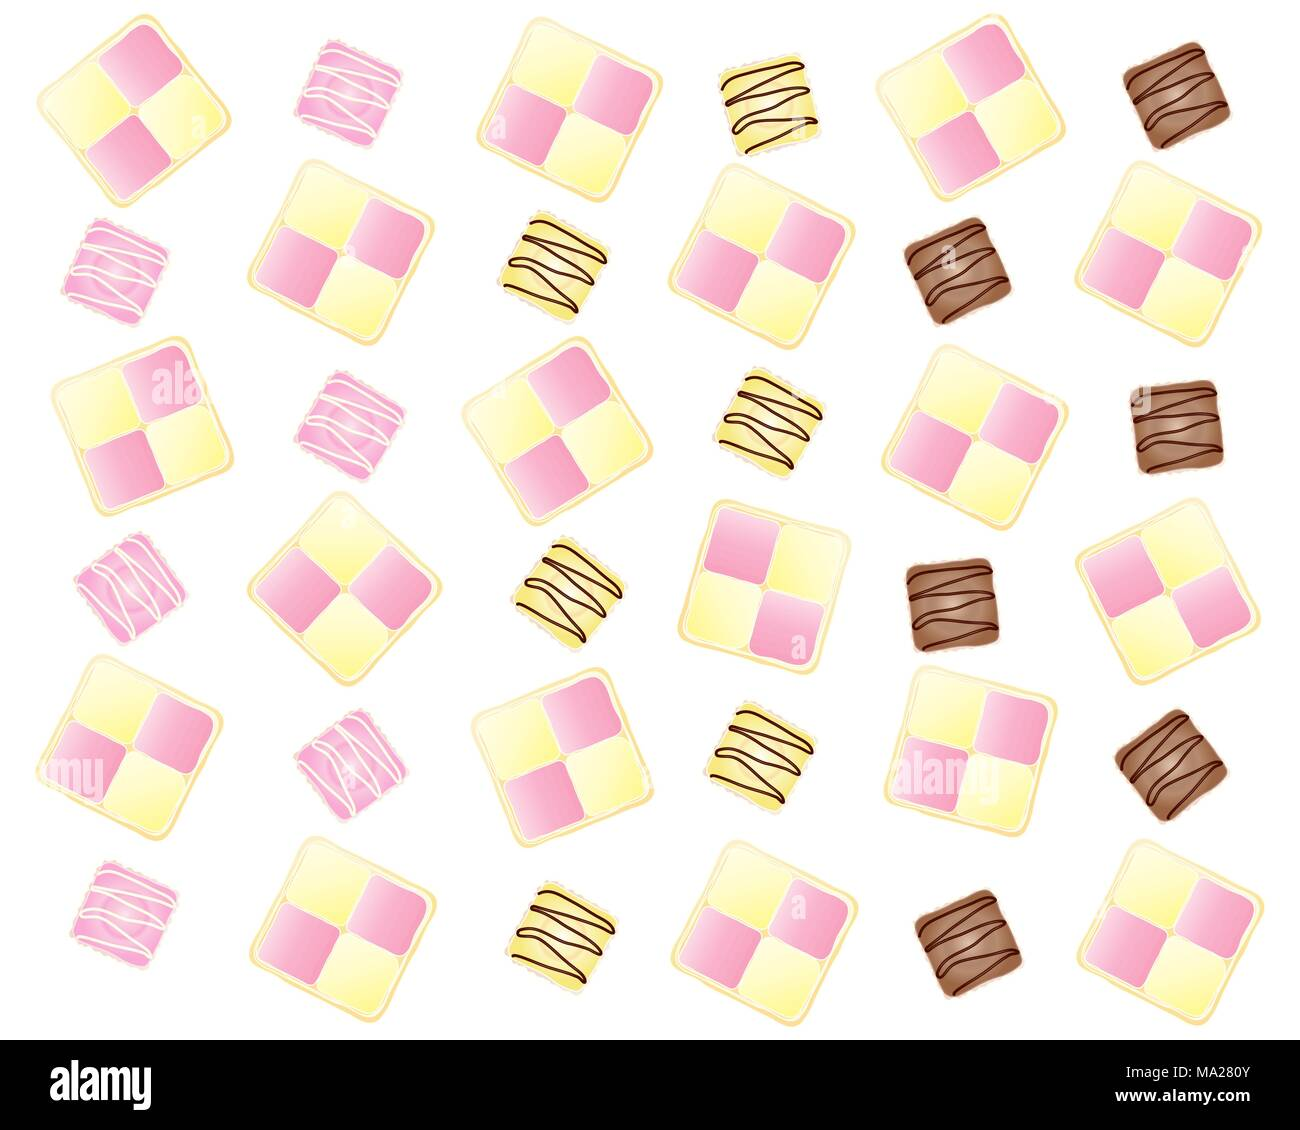 an illustration of an abstract cake design with battenburg slices and french fancies in a fun layout on a white background - Stock Image